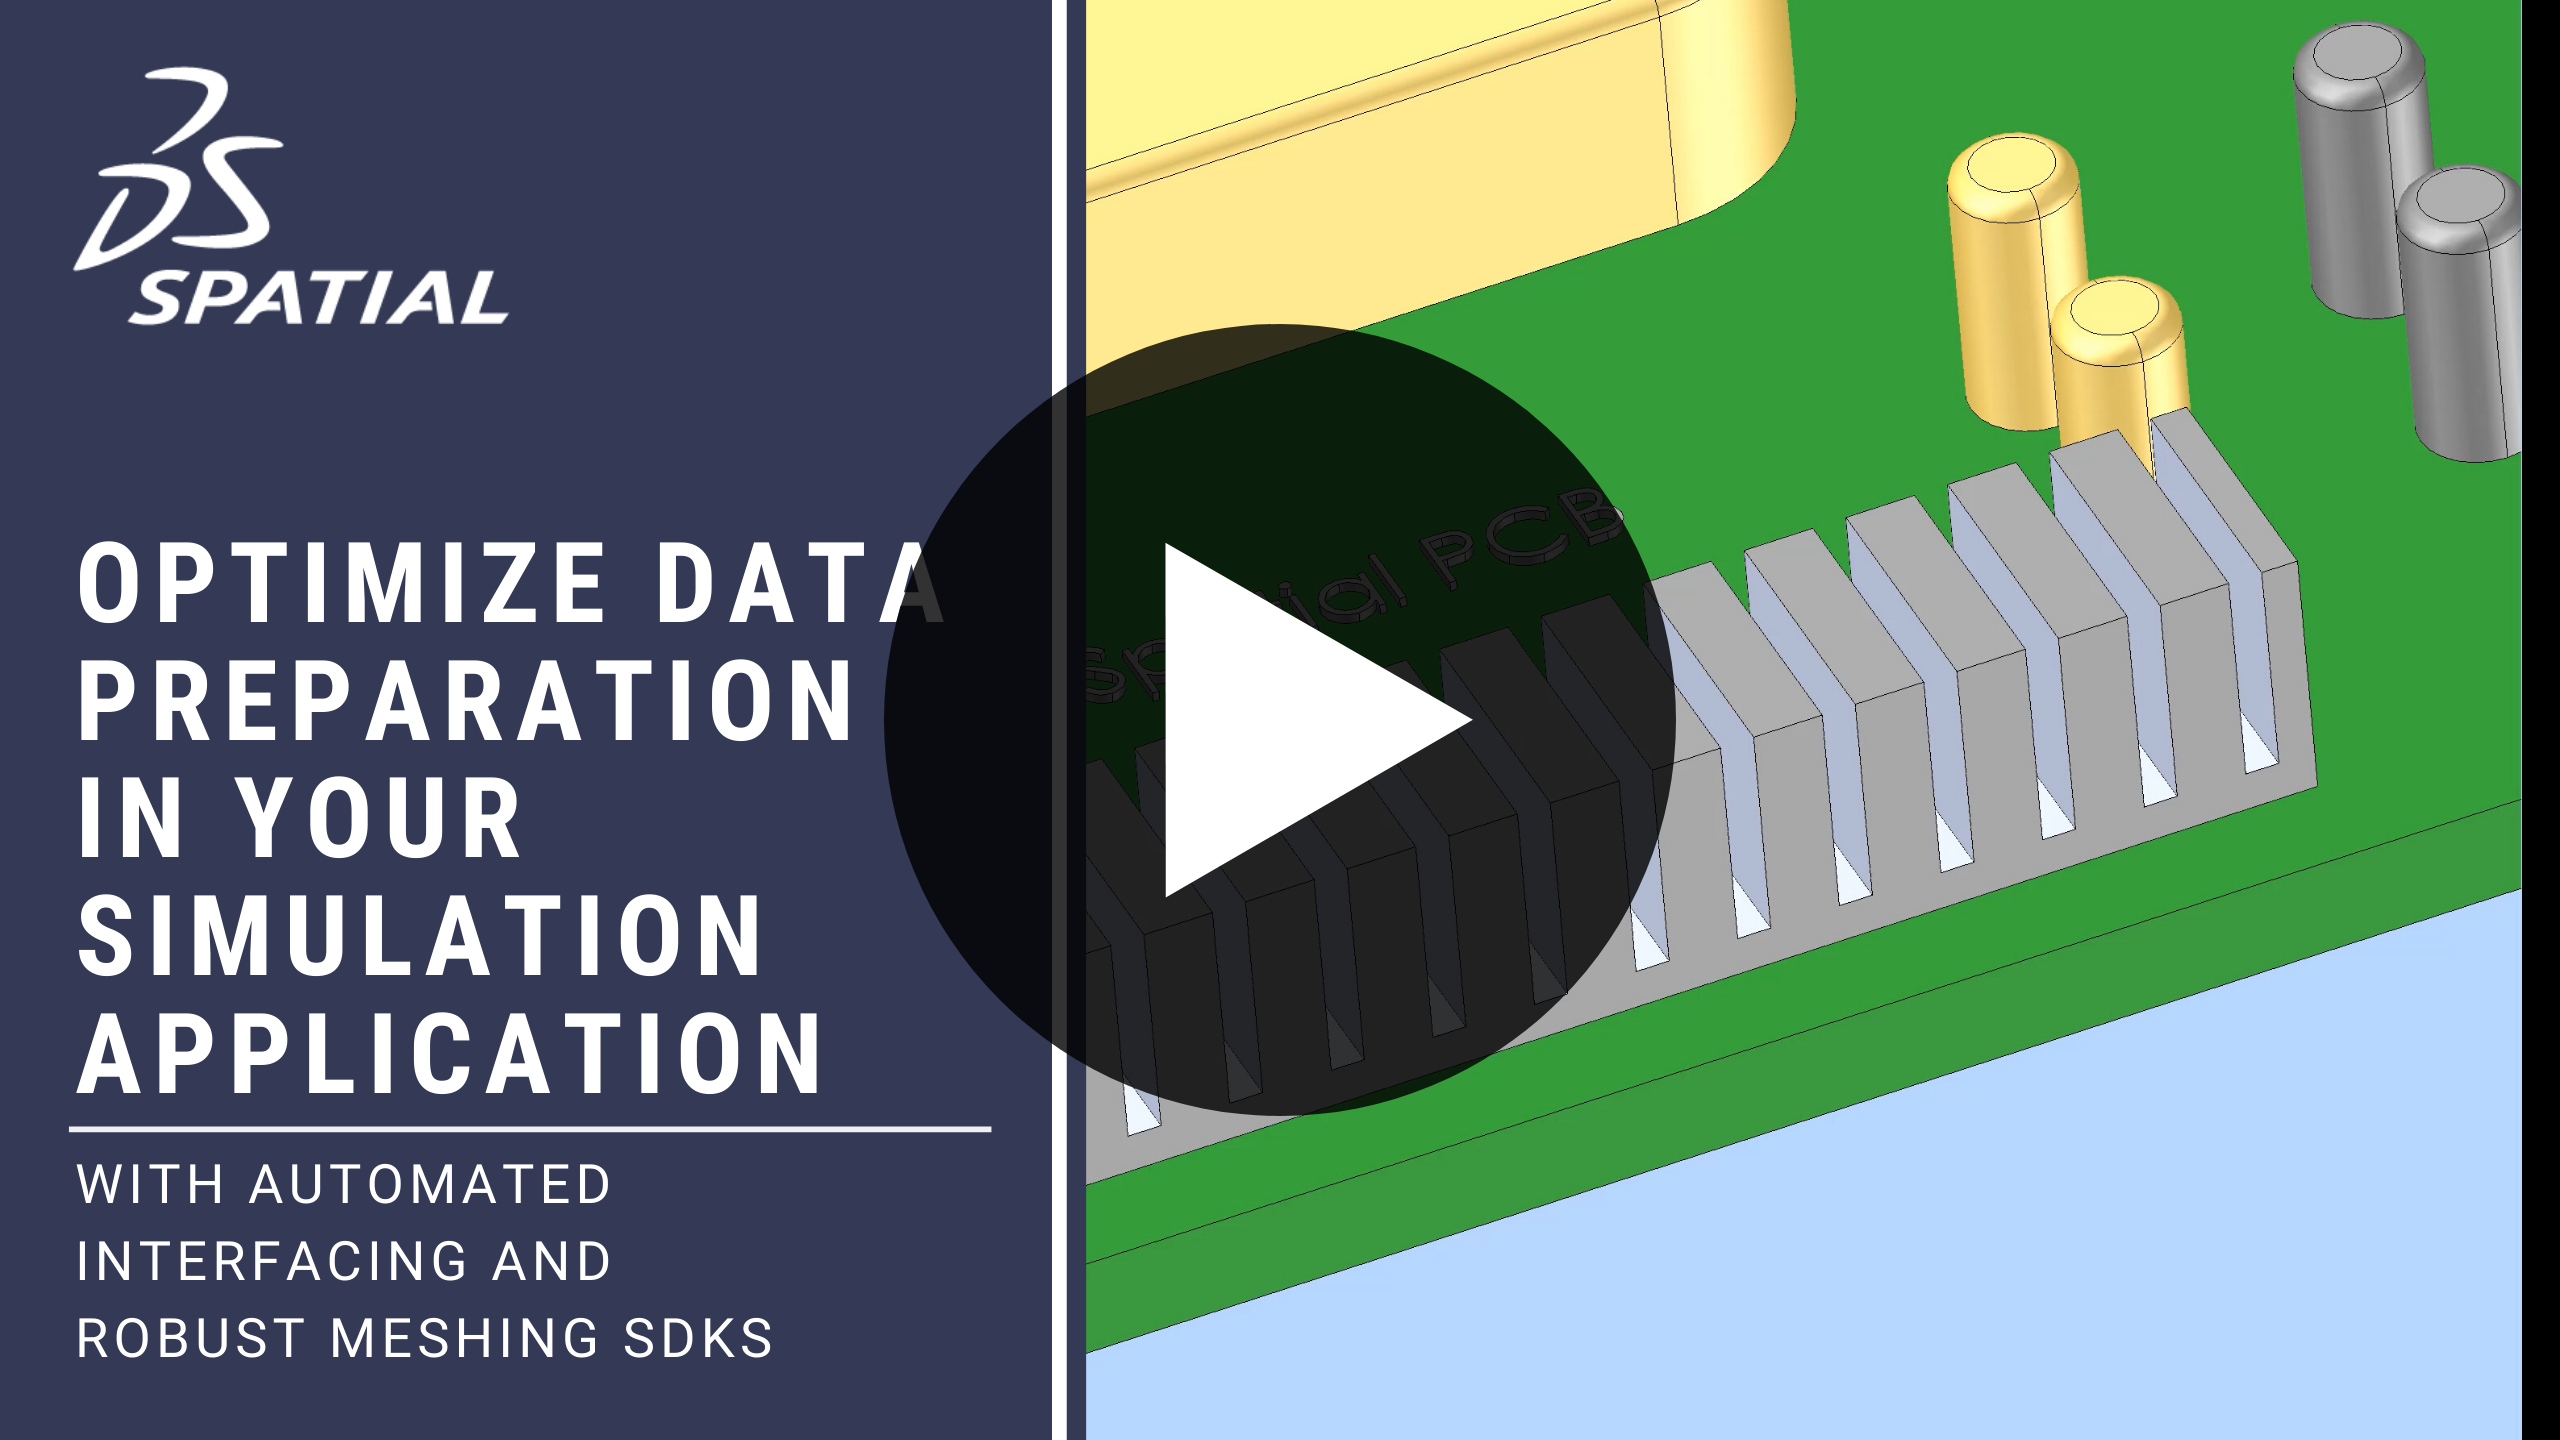 Optimize Data Preparation